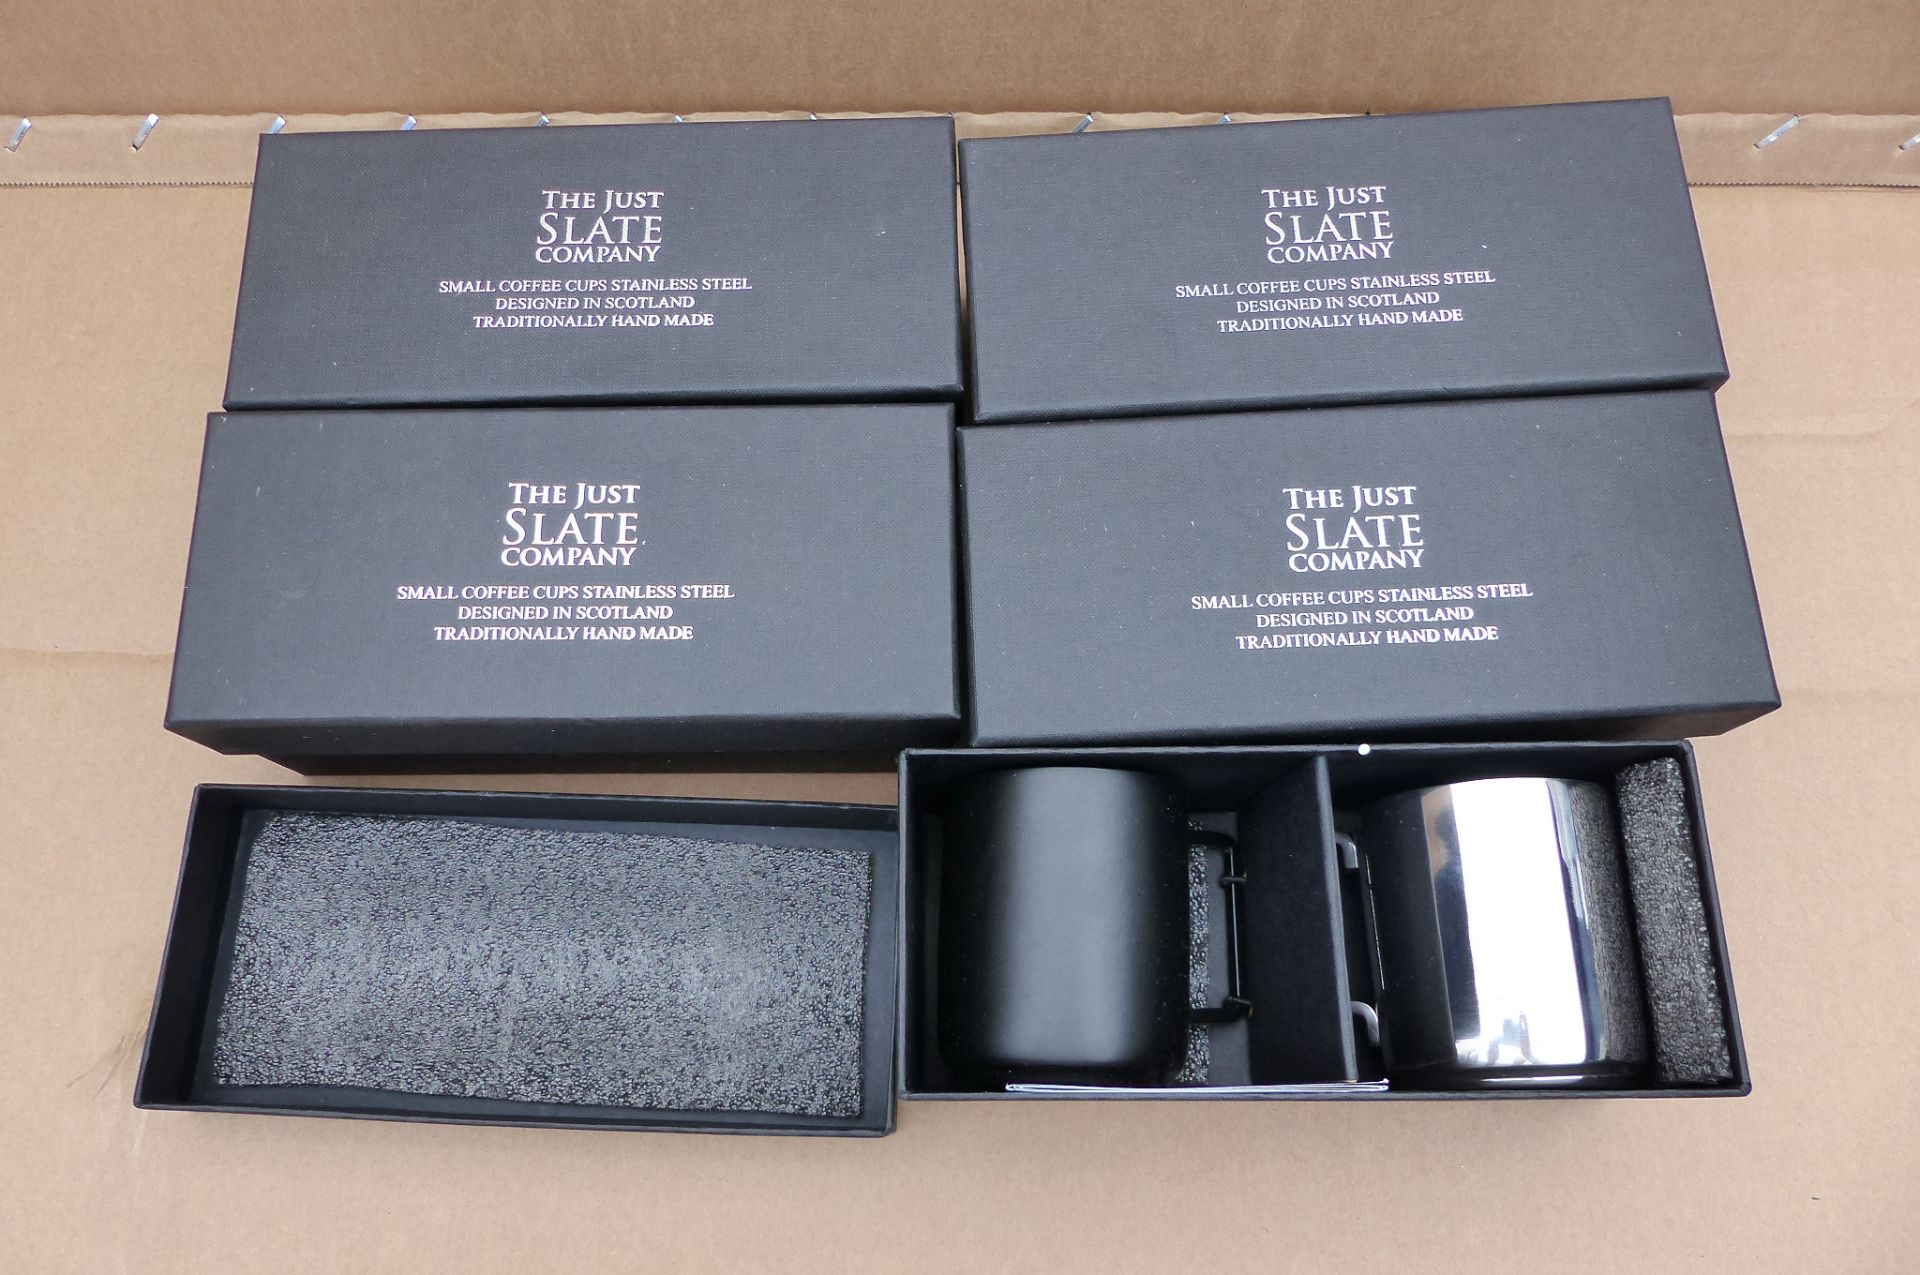 5 x Just Slate Company Black and Silver Mugs In gift box - Image 2 of 2